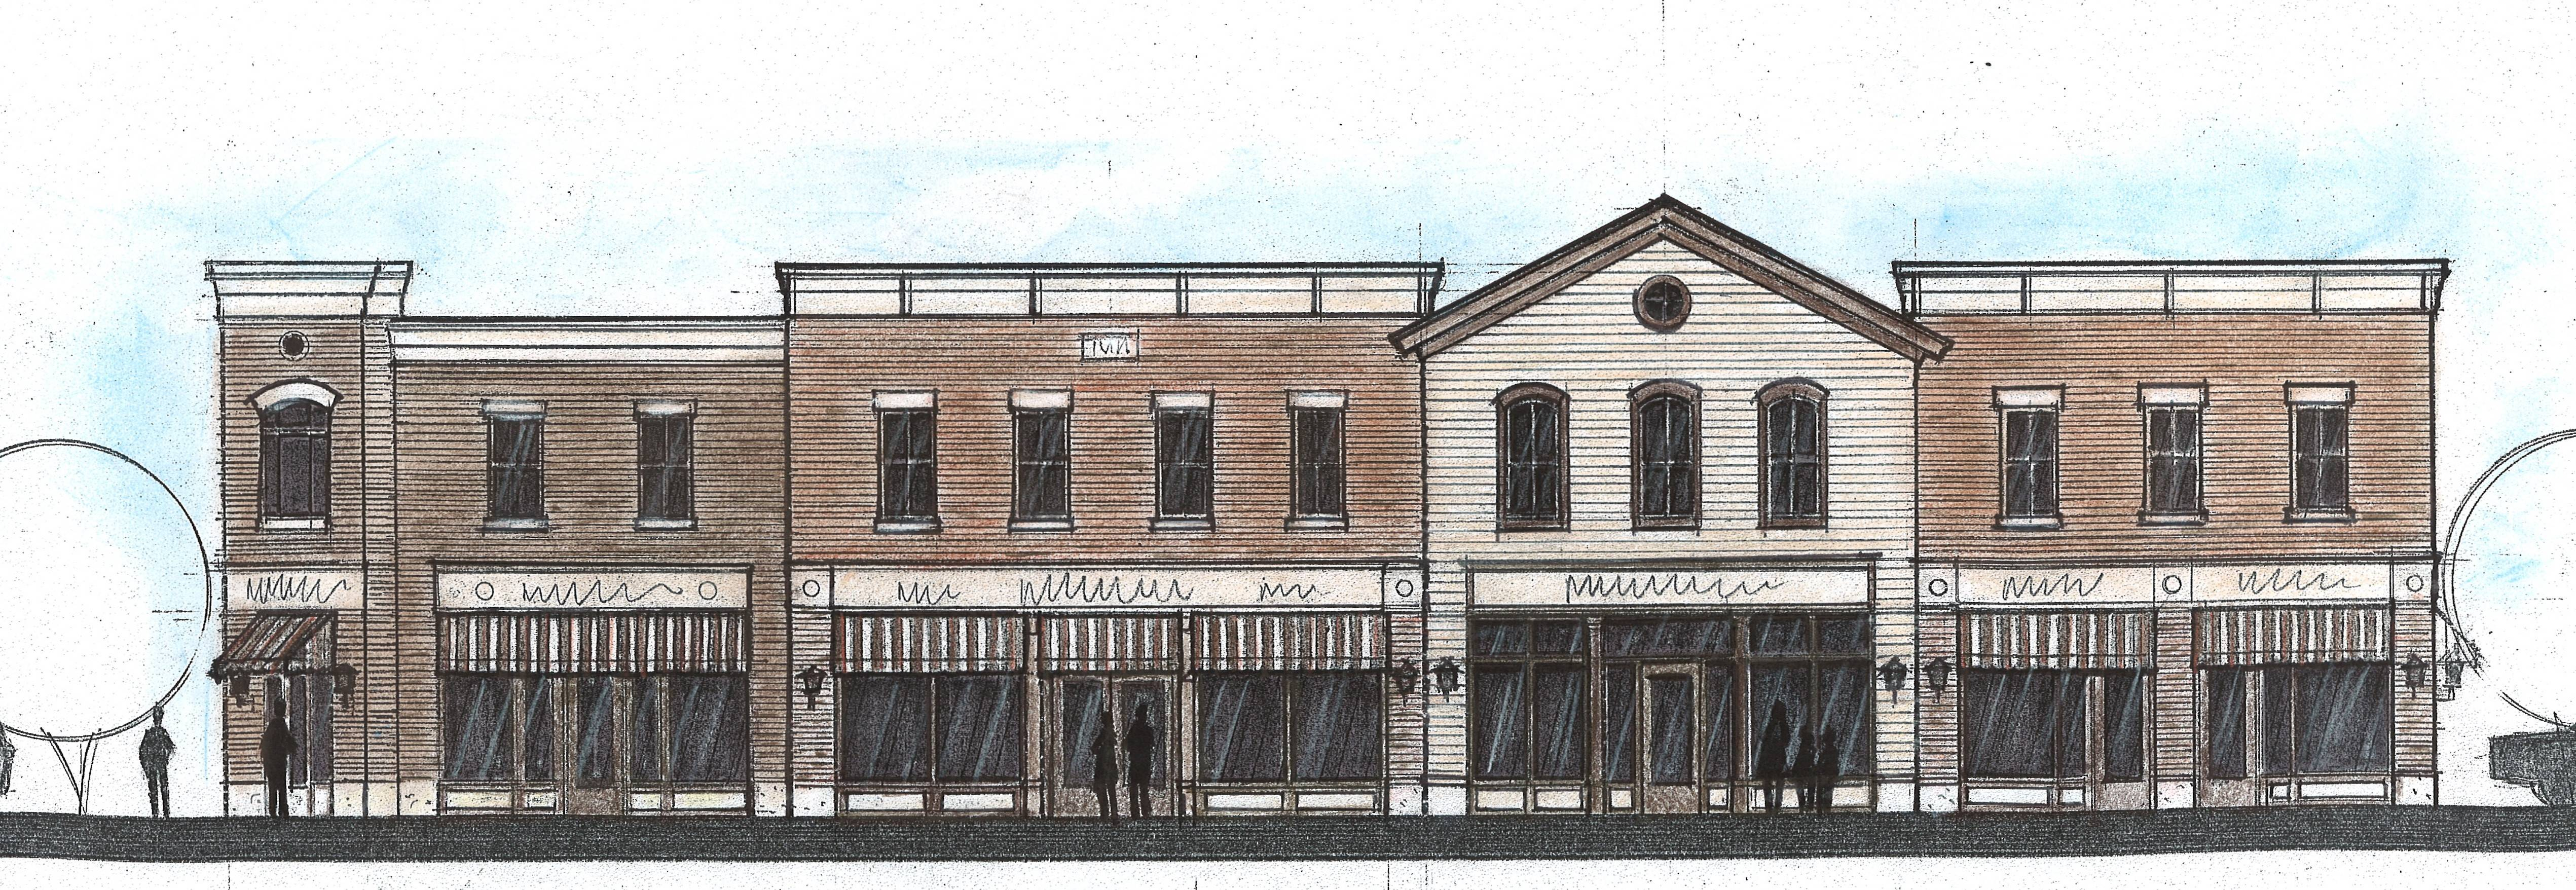 This $940,000 multi-tenant commercial building will replace Huntley's historic 19th century downtown mill. The project kicks off the village's long-term effort to revitalize its historic downtown.